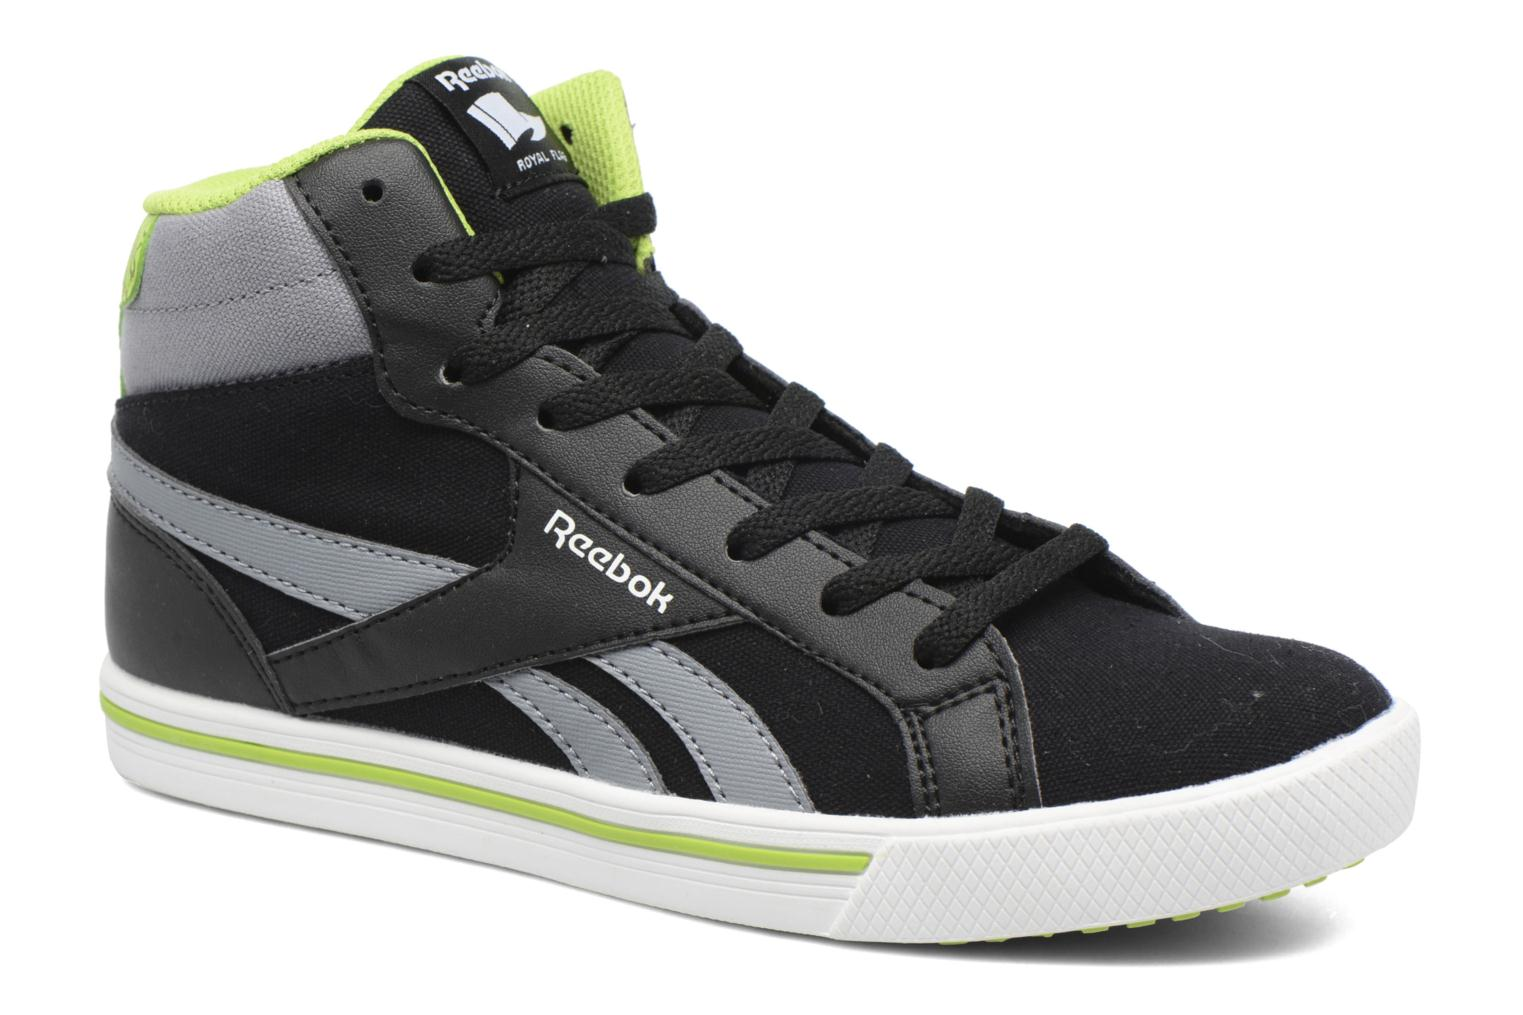 sneakers-reebok-royal-comp-mid-cvs-by-reebok